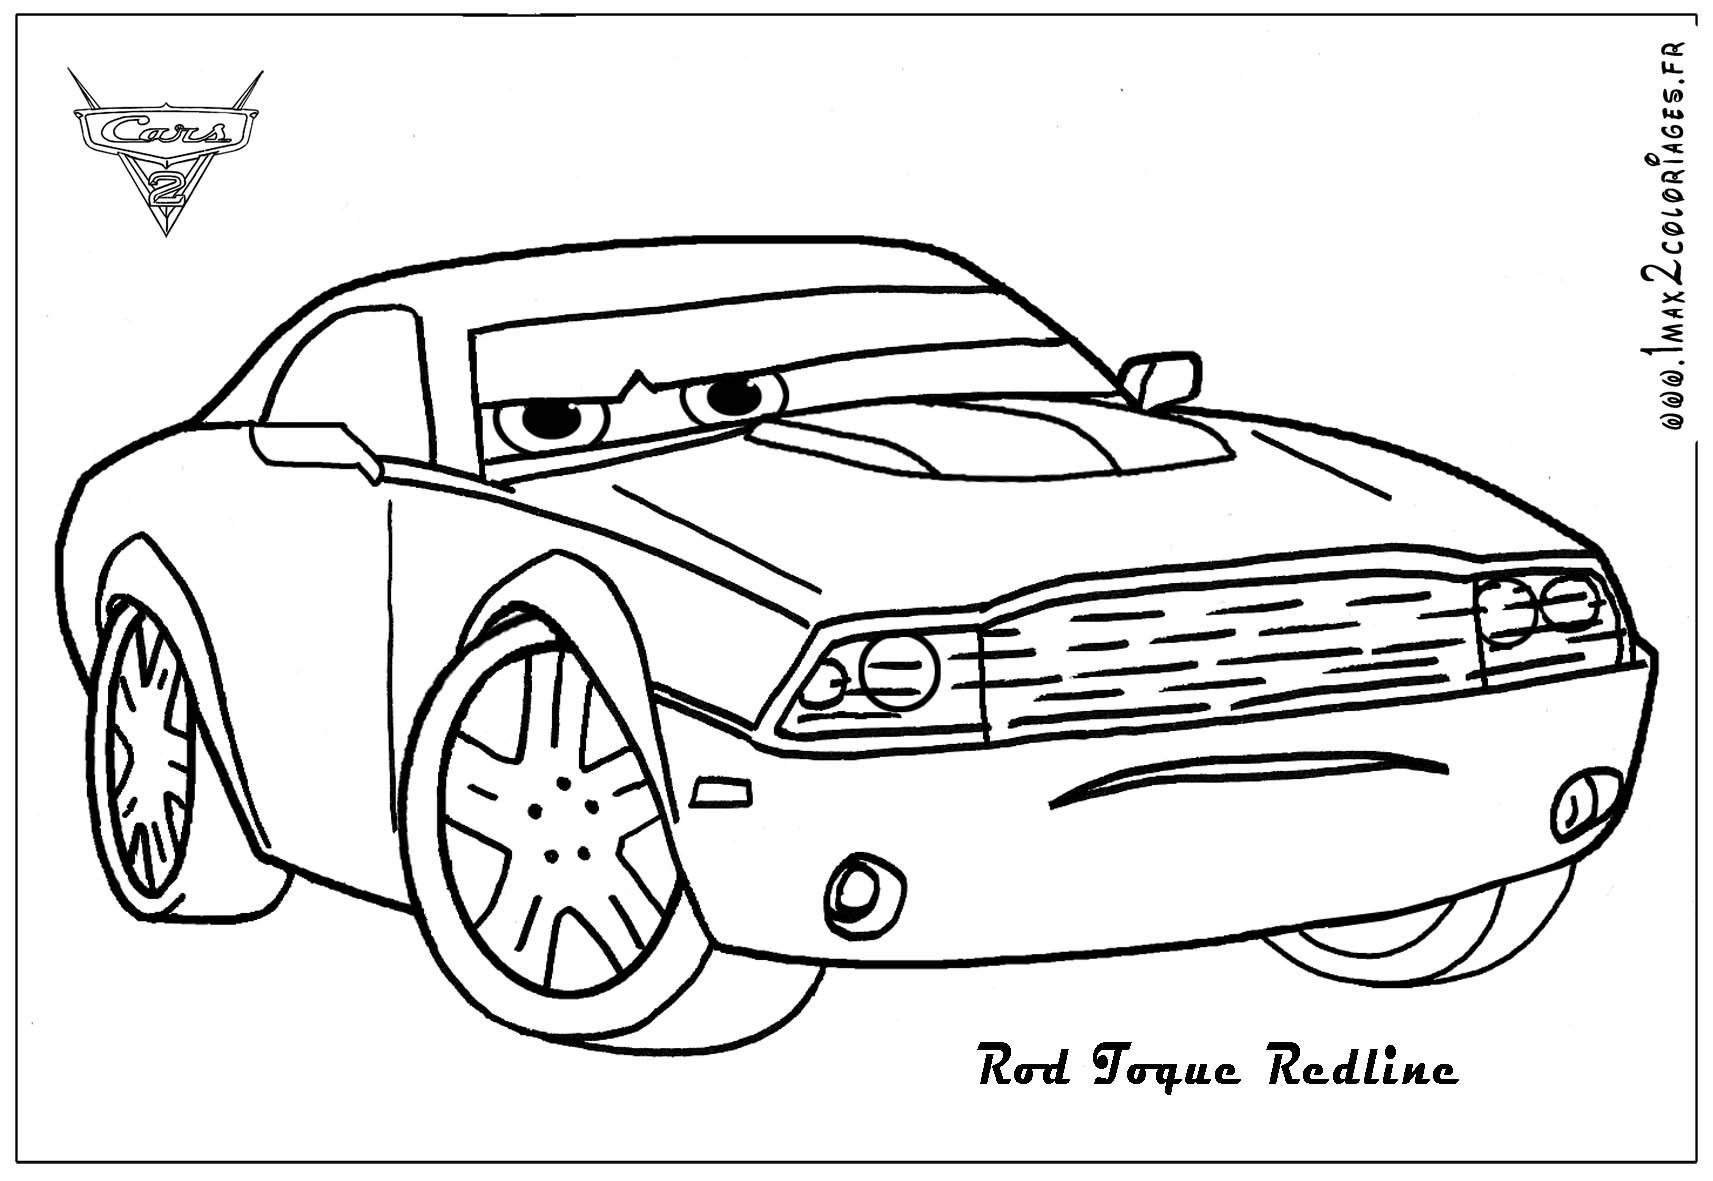 cars 2 pictures to print cars 2 printable coloring pages pictures coloring page 2 to cars print pictures